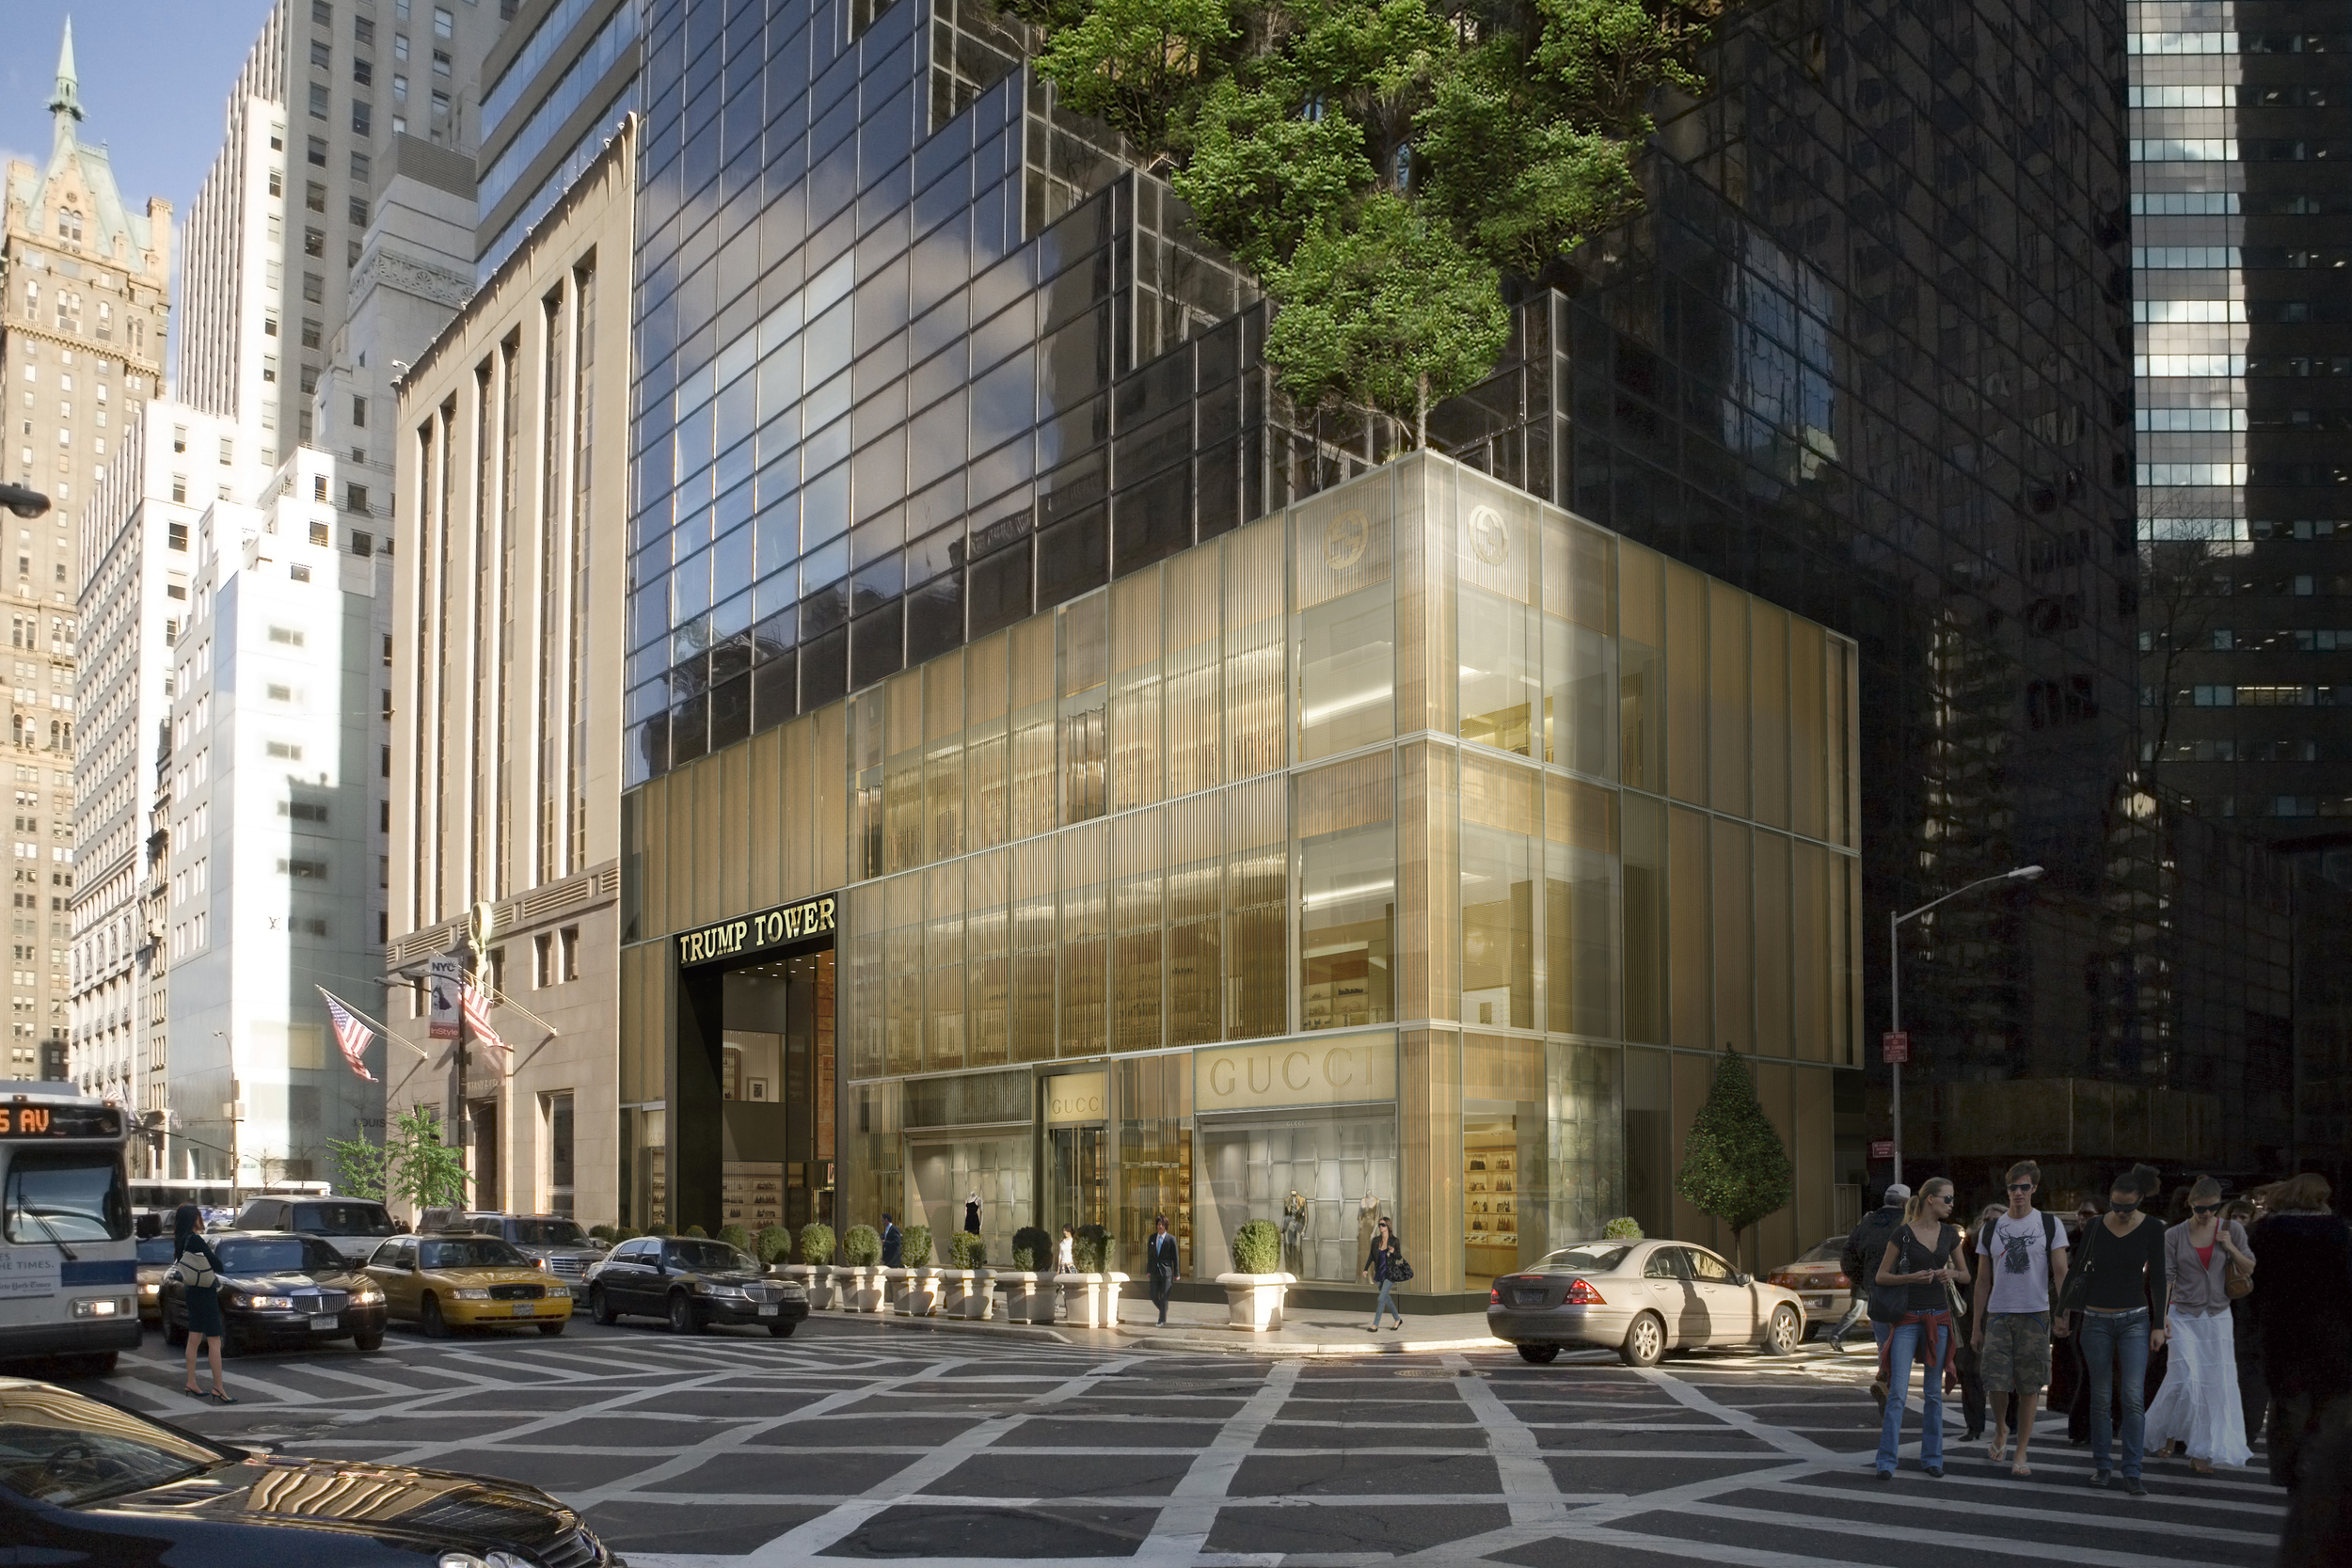 Gucci NYC Flagship at 55th Street & Fifth Avenue